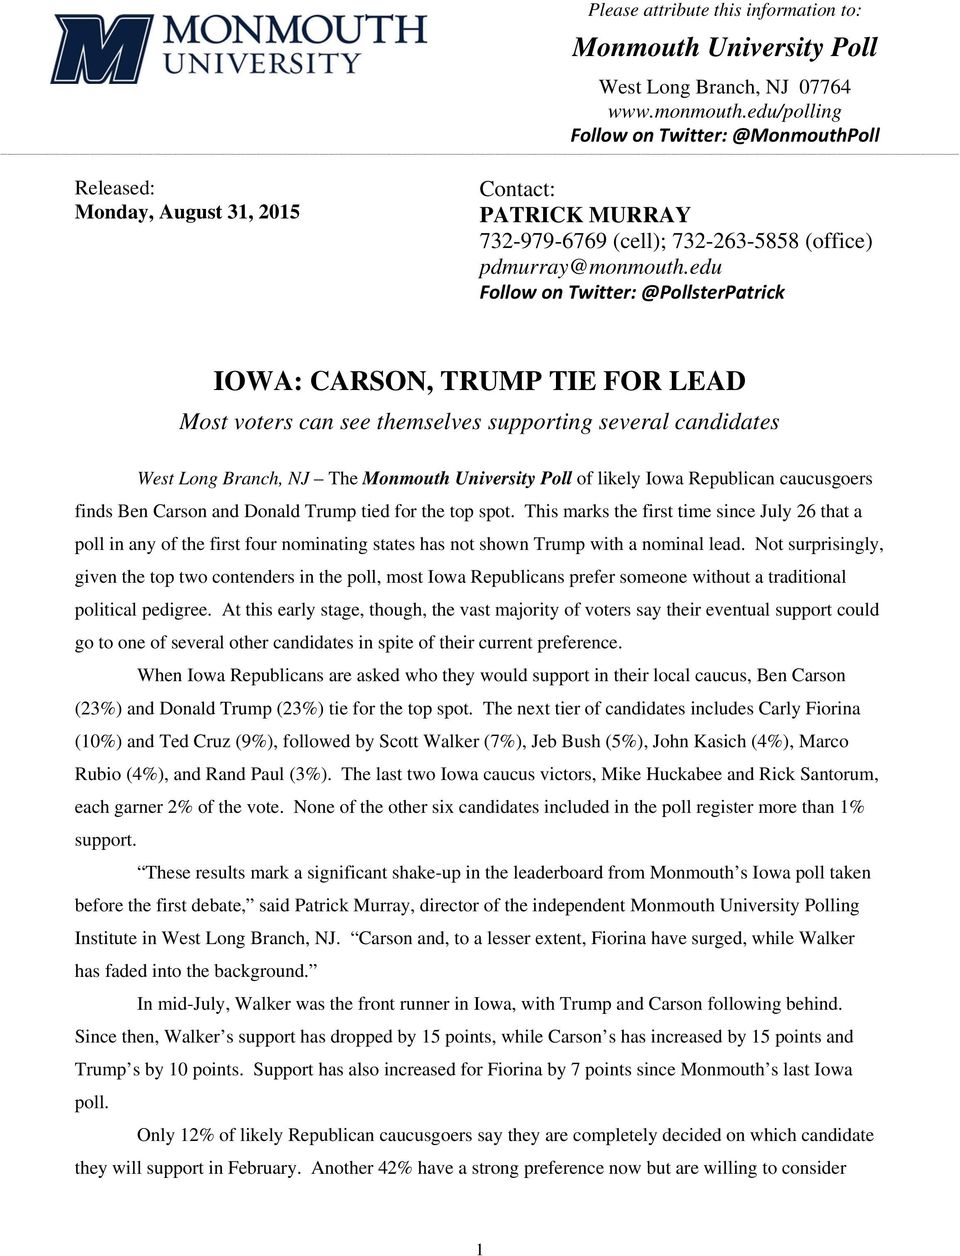 edu Follow on Twitter: @PollsterPatrick IOWA: CARSON, TRUMP TIE FOR LEAD Most voters can see themselves supporting several candidates West Long Branch, NJ The Monmouth University Poll of likely Iowa